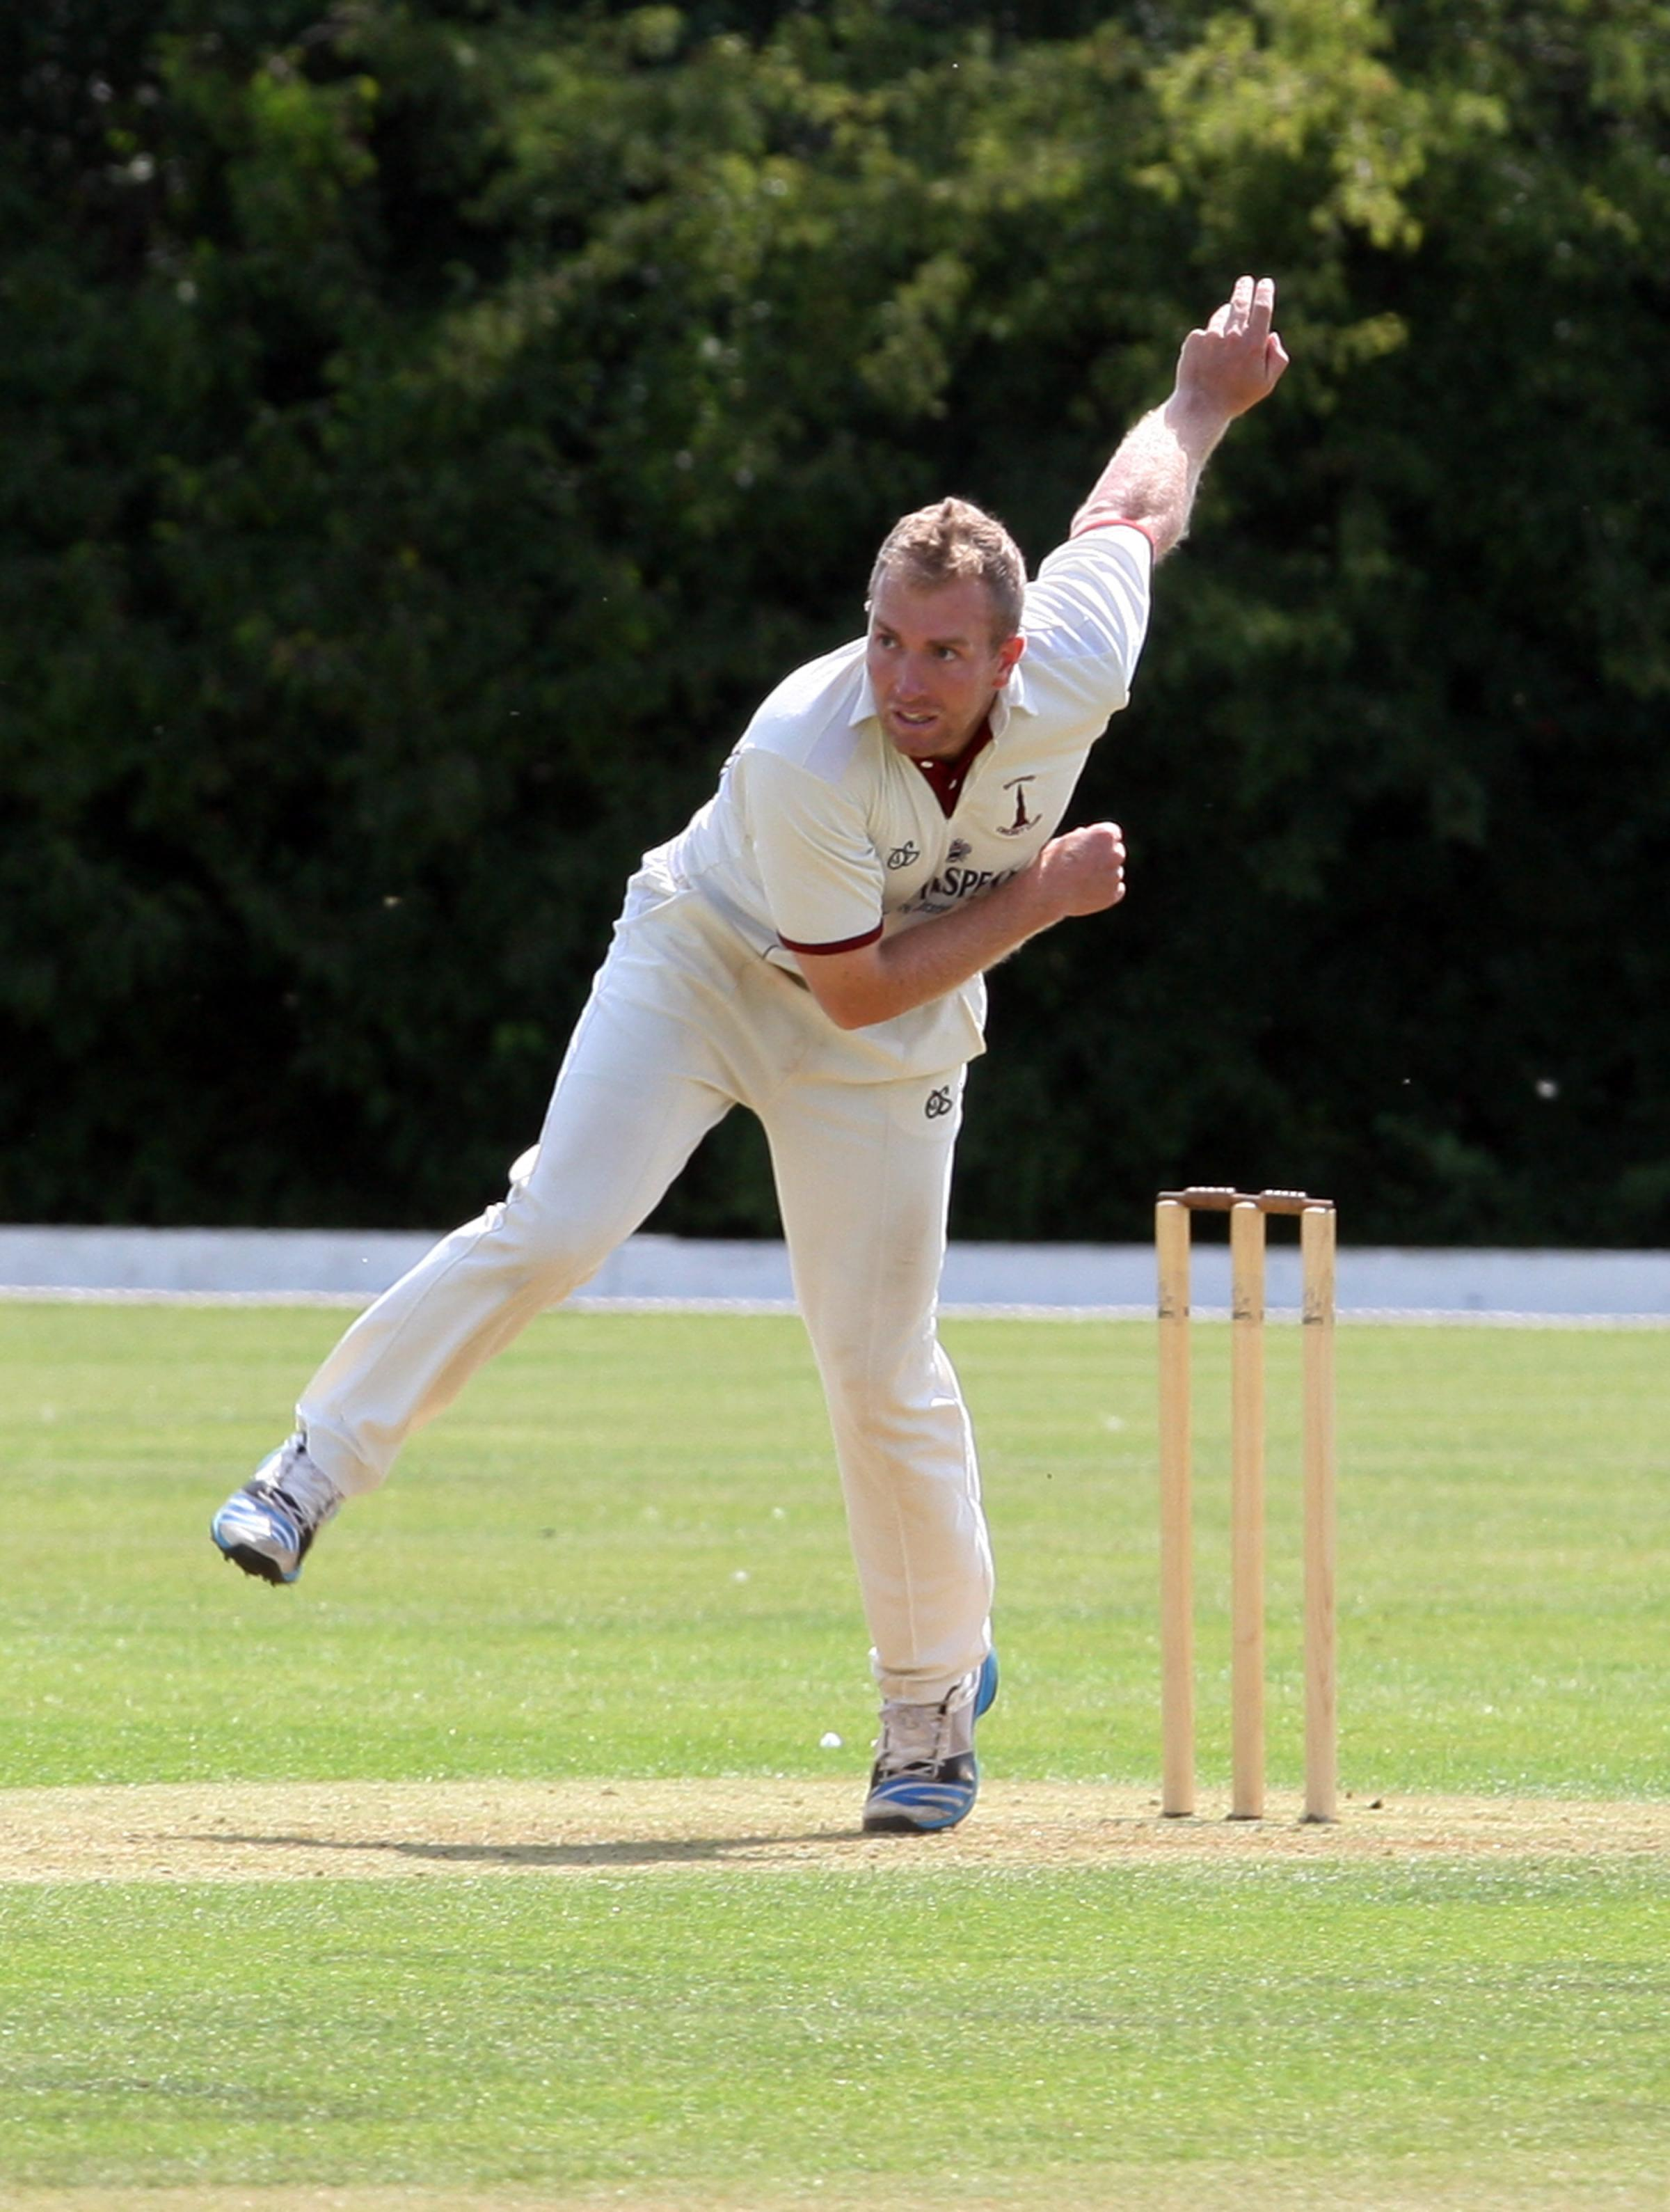 ALL-ROUNDER: Richard West shone with both and ball for Banbury in their victory over Horspath